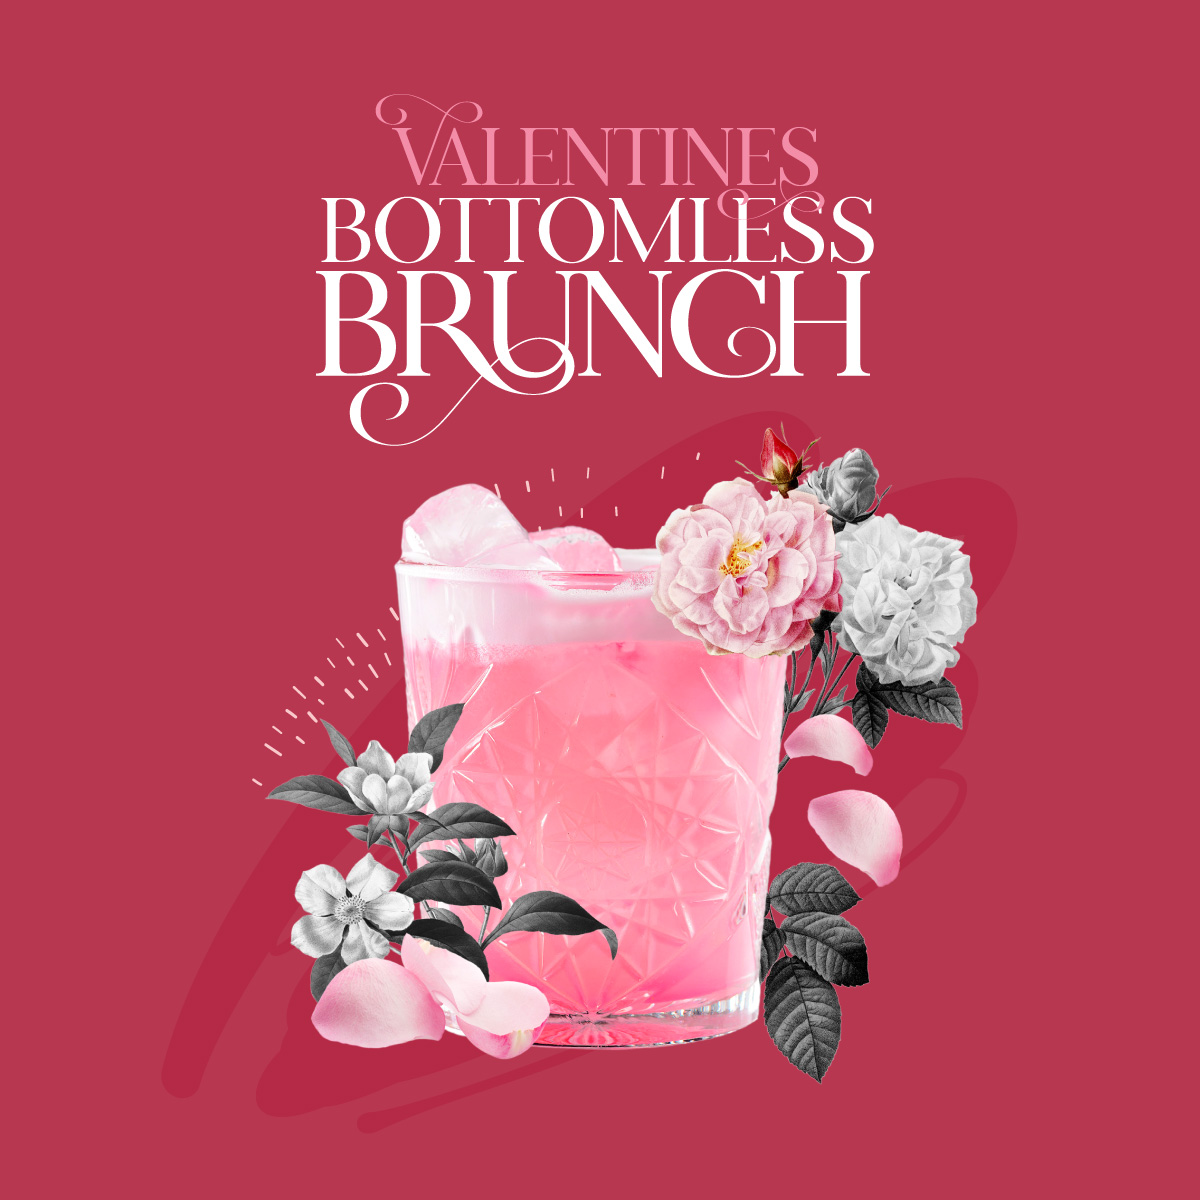 Aviary Rooftop Bar Valentine's Day Bottomless Brunch